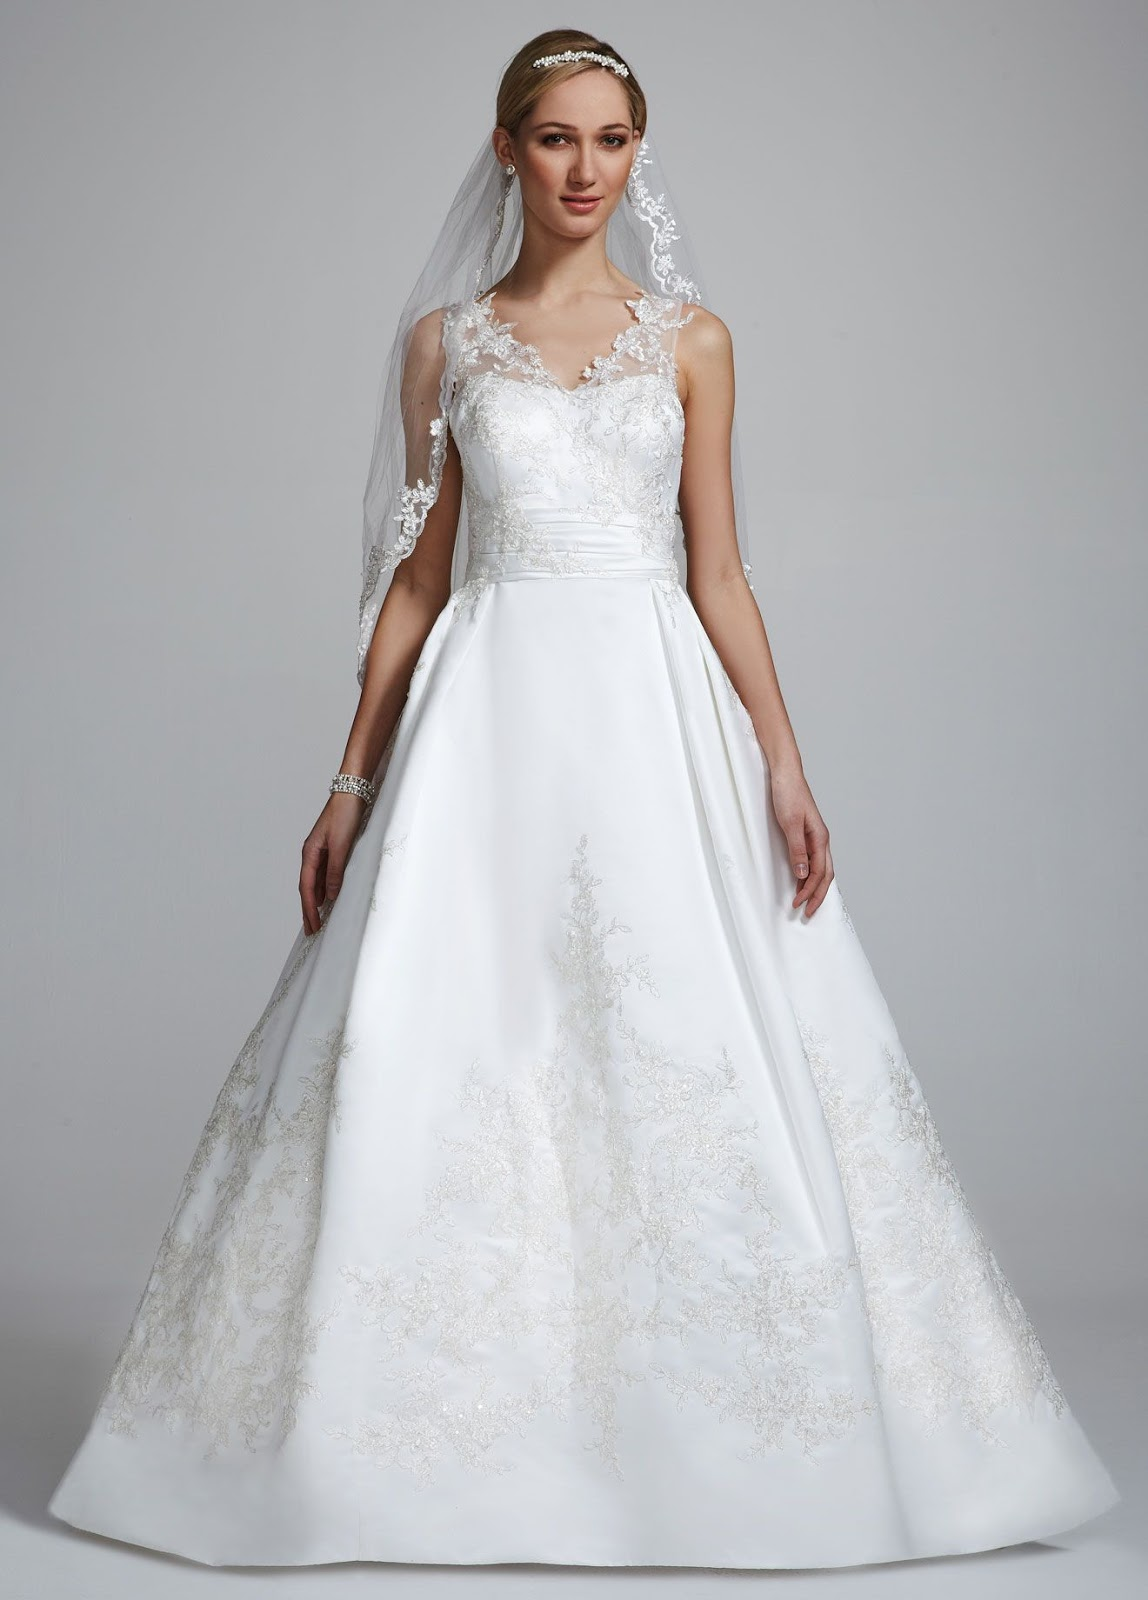 Lace Wedding Dresses Under 400 : Friday five for wedding dresses under dollars volume